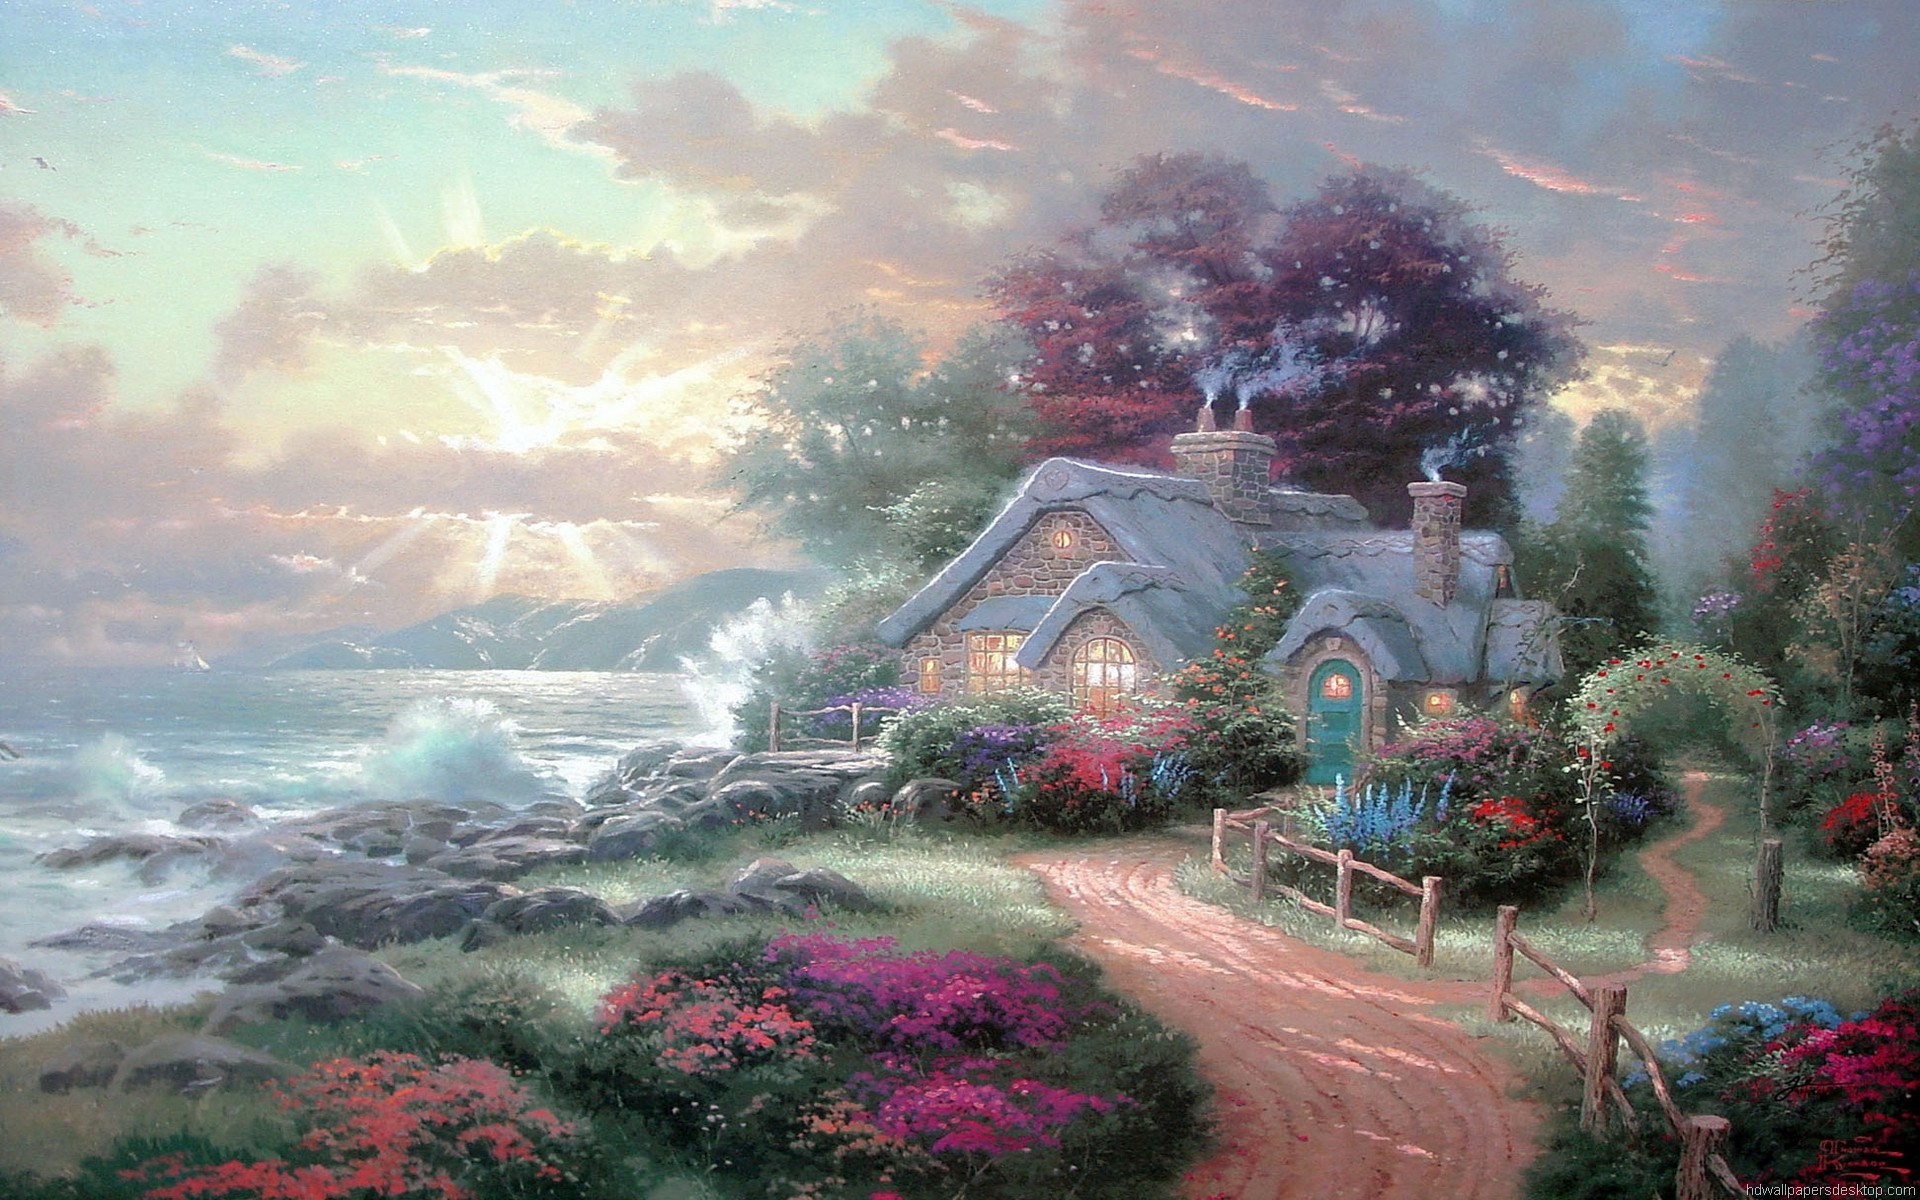 Thomas kinkade wallpapers for desktop 1920x1200 hd wallpapers thomas kinkade 1920 x 1080 1268 kb jpeg hd wallpapers voltagebd Gallery